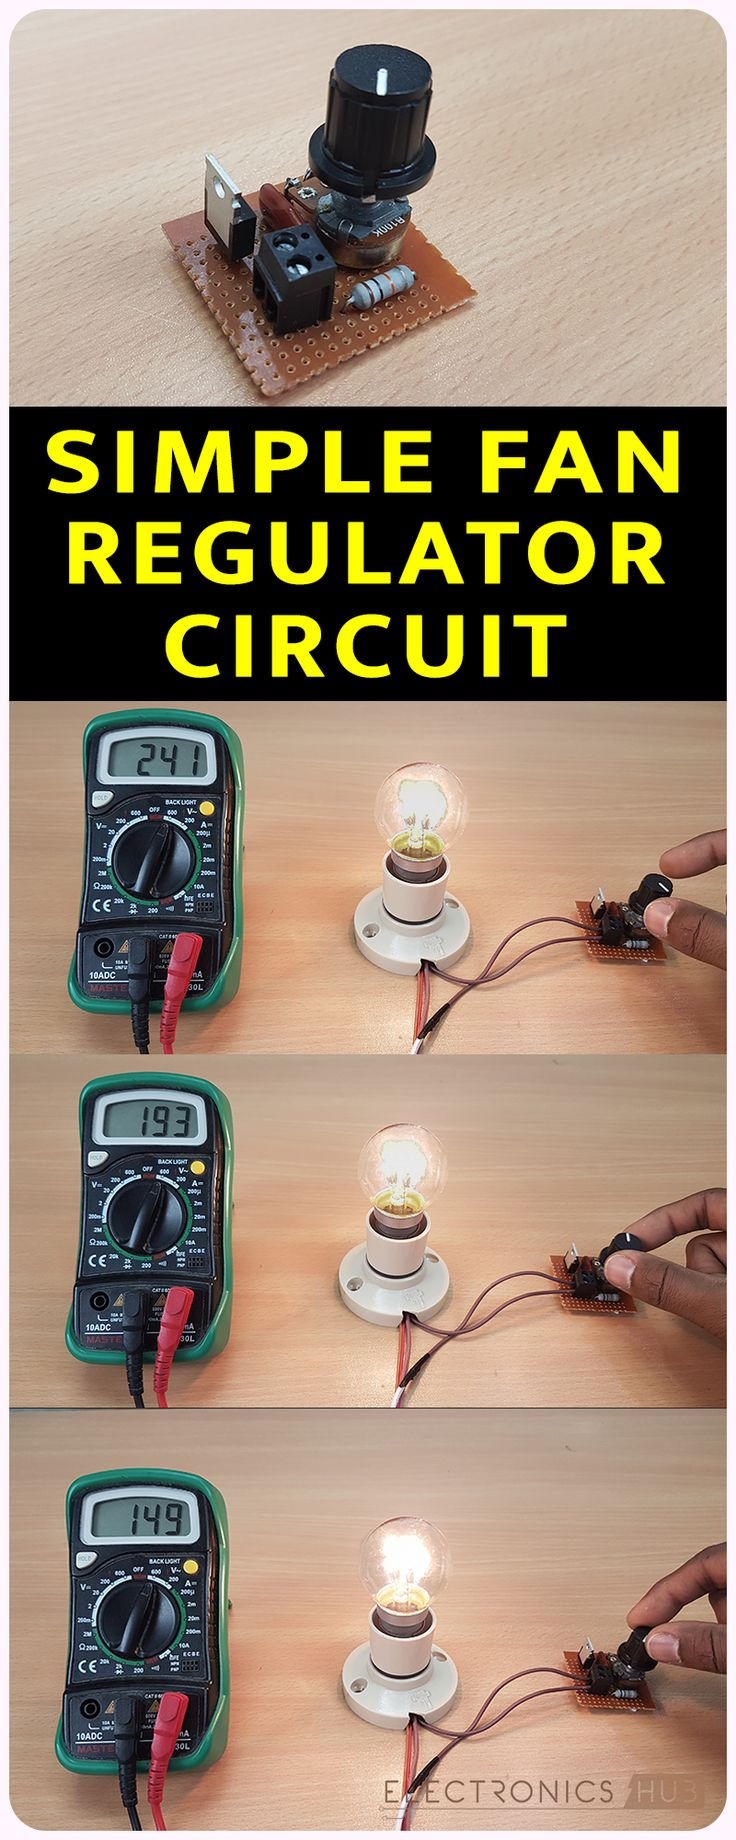 27 Best Electro Images On Pinterest Arduino Projects Electronics Simple 12 Volt Charger D Mohankumar Battery Chargers Fan Regulator Circuit Using Triac And Diac